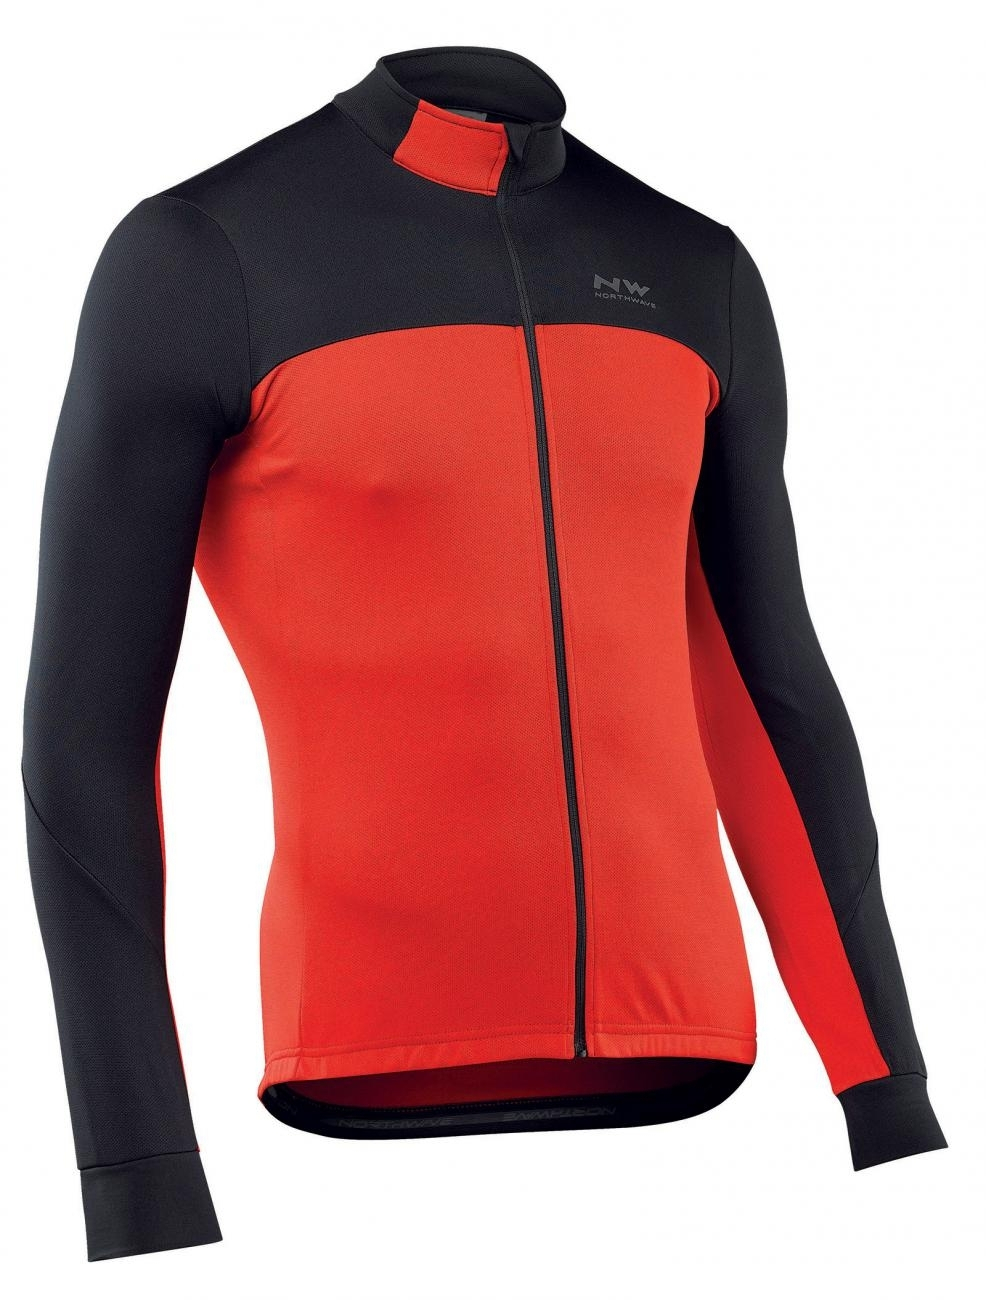 NORTHWAVE Man cycling jersey long sleeves full zip FORCE 2 black/red